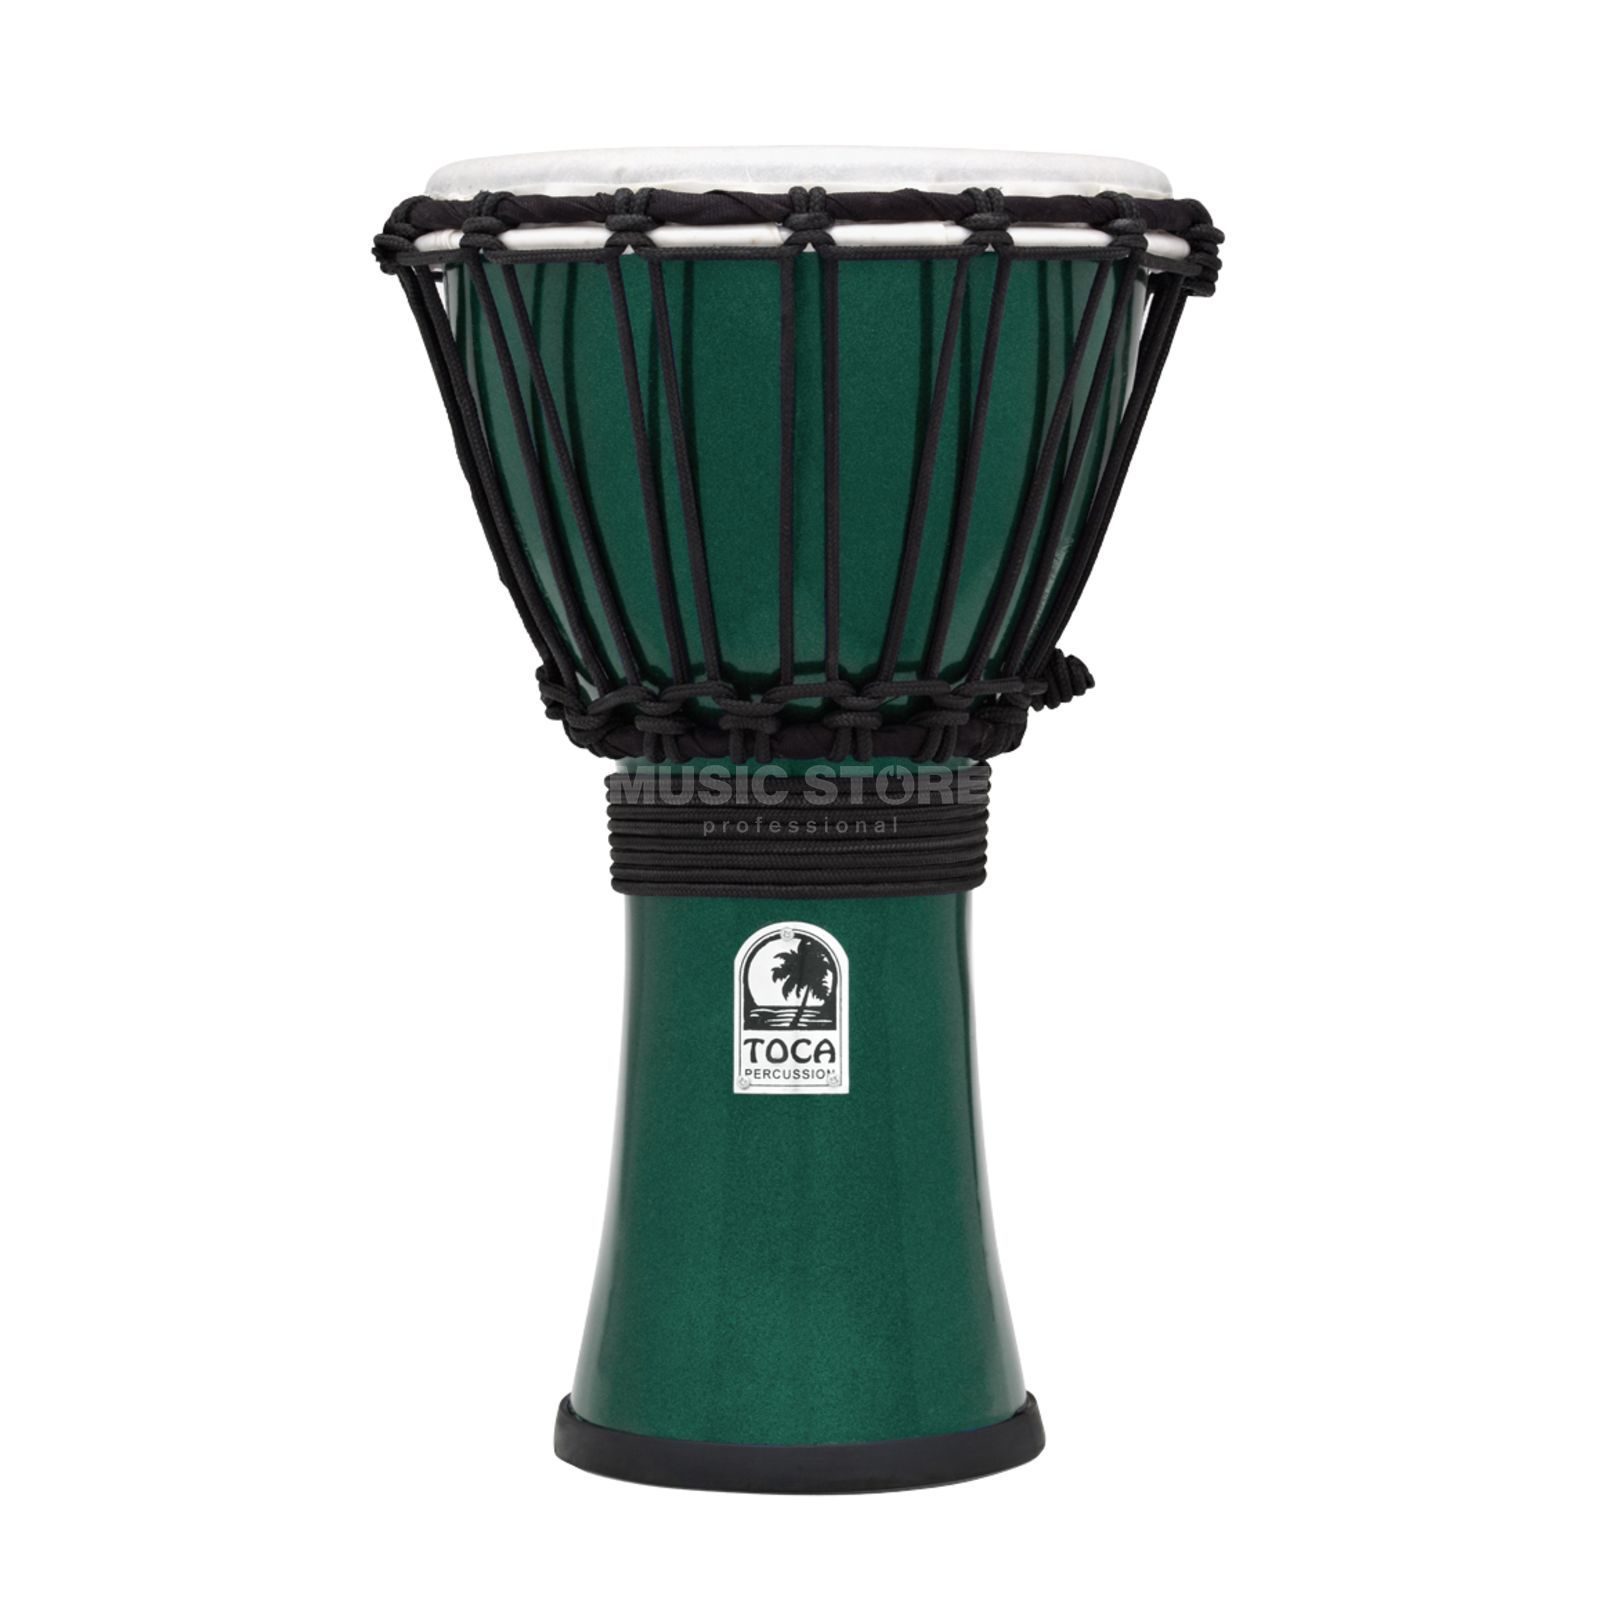 "Toca Percussion ColorSound Djembe TFCDJ-7MG, 7"", Green Изображение товара"